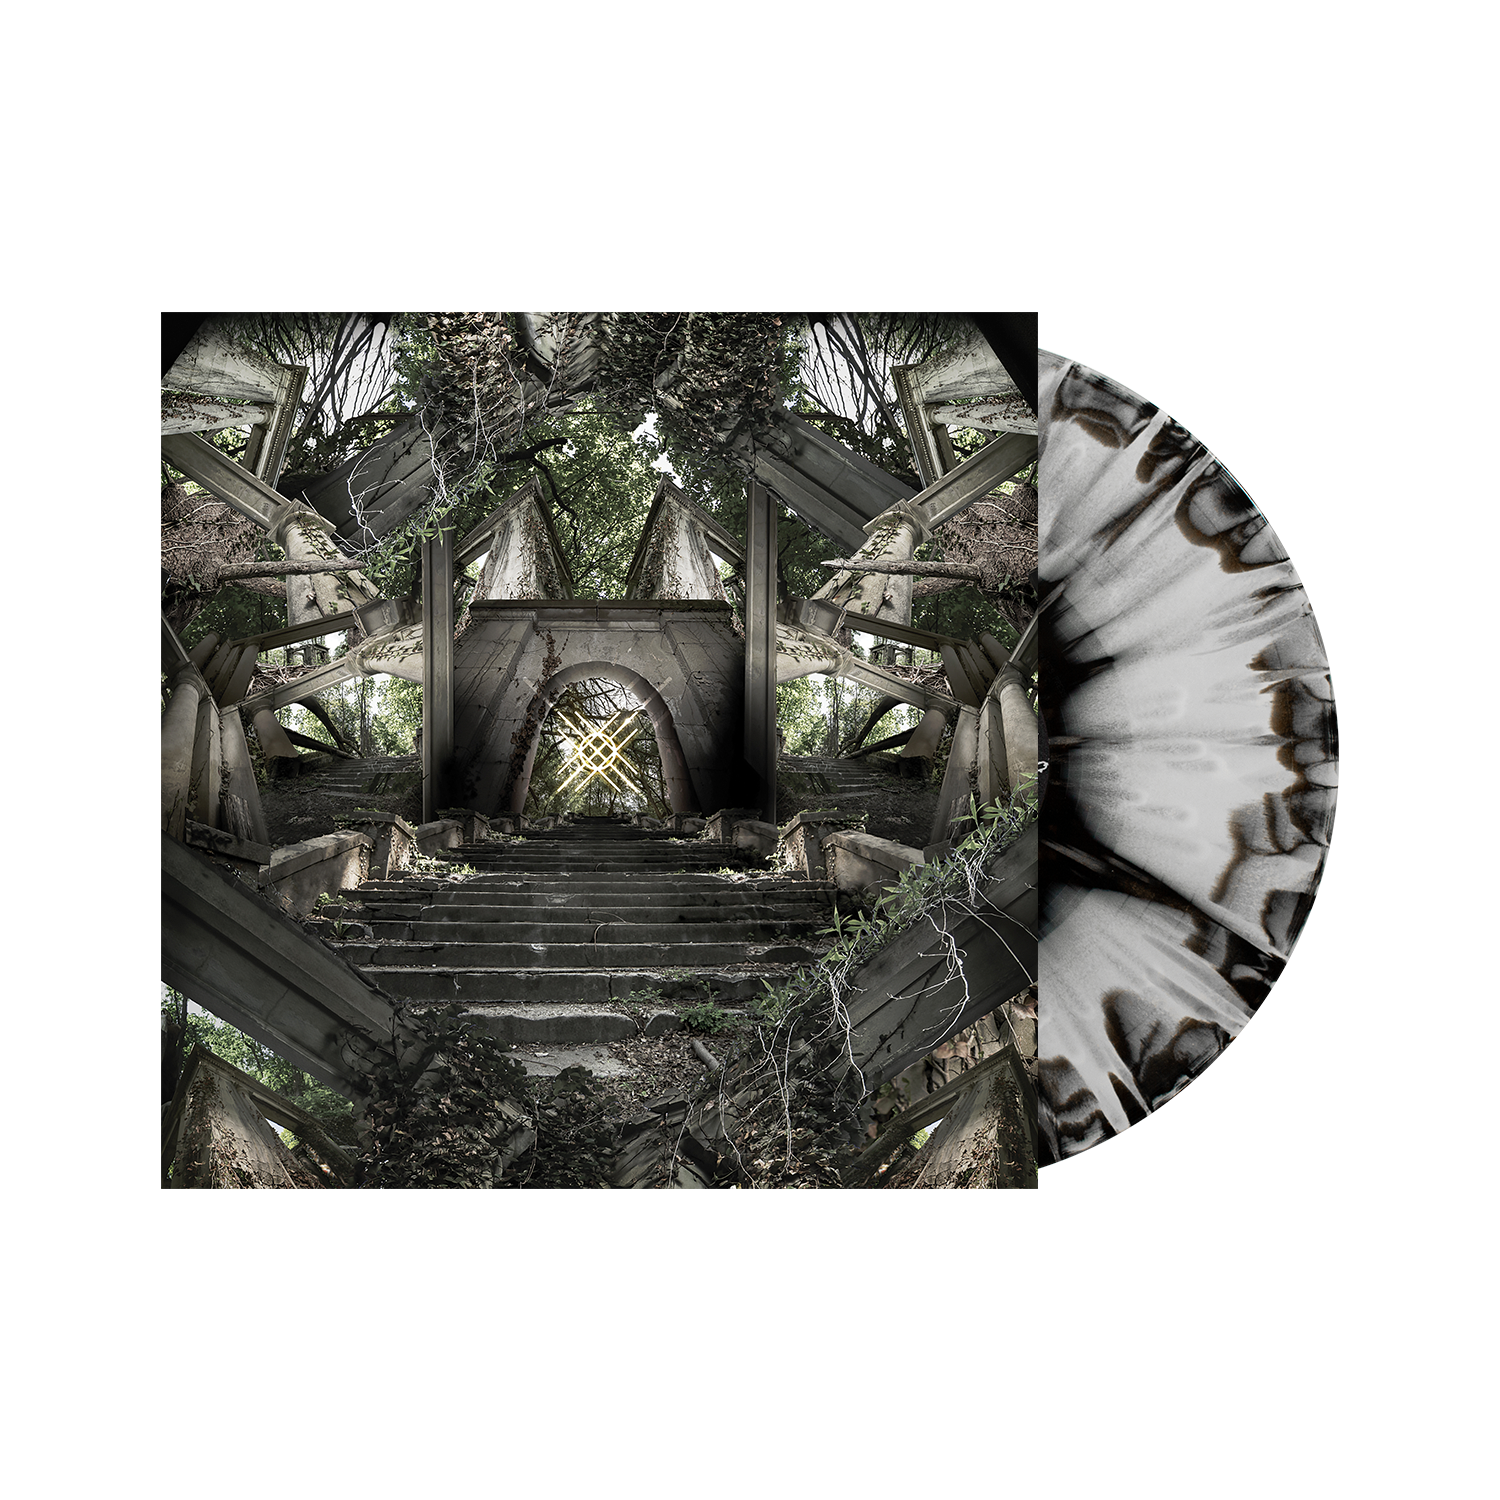 Moon Tooth 'Crux' LP Web Exclusive 1 (Black & White Aside / Aside w/ heavy silver splatter)